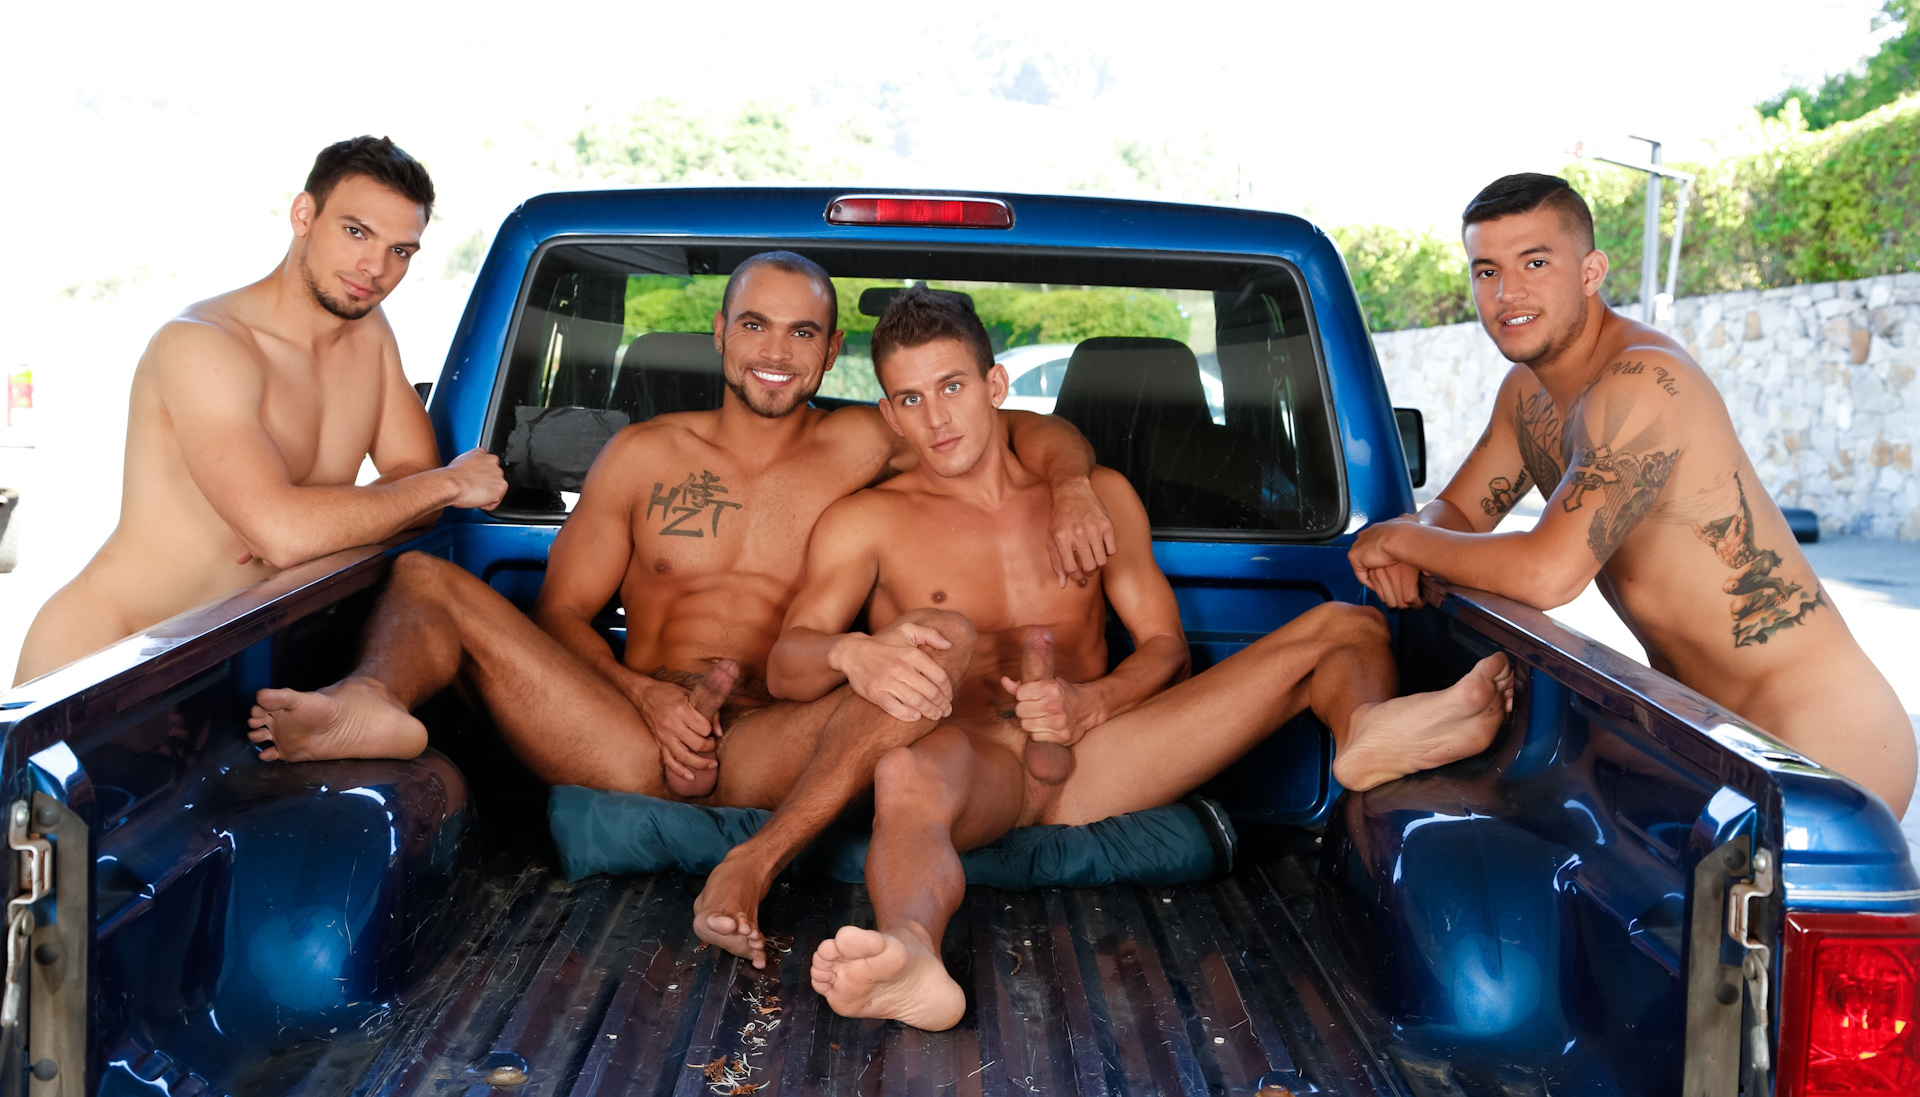 big gay orgies Sort movies by Most  Relevant and catch the best full length Gay Orgy movies now!.